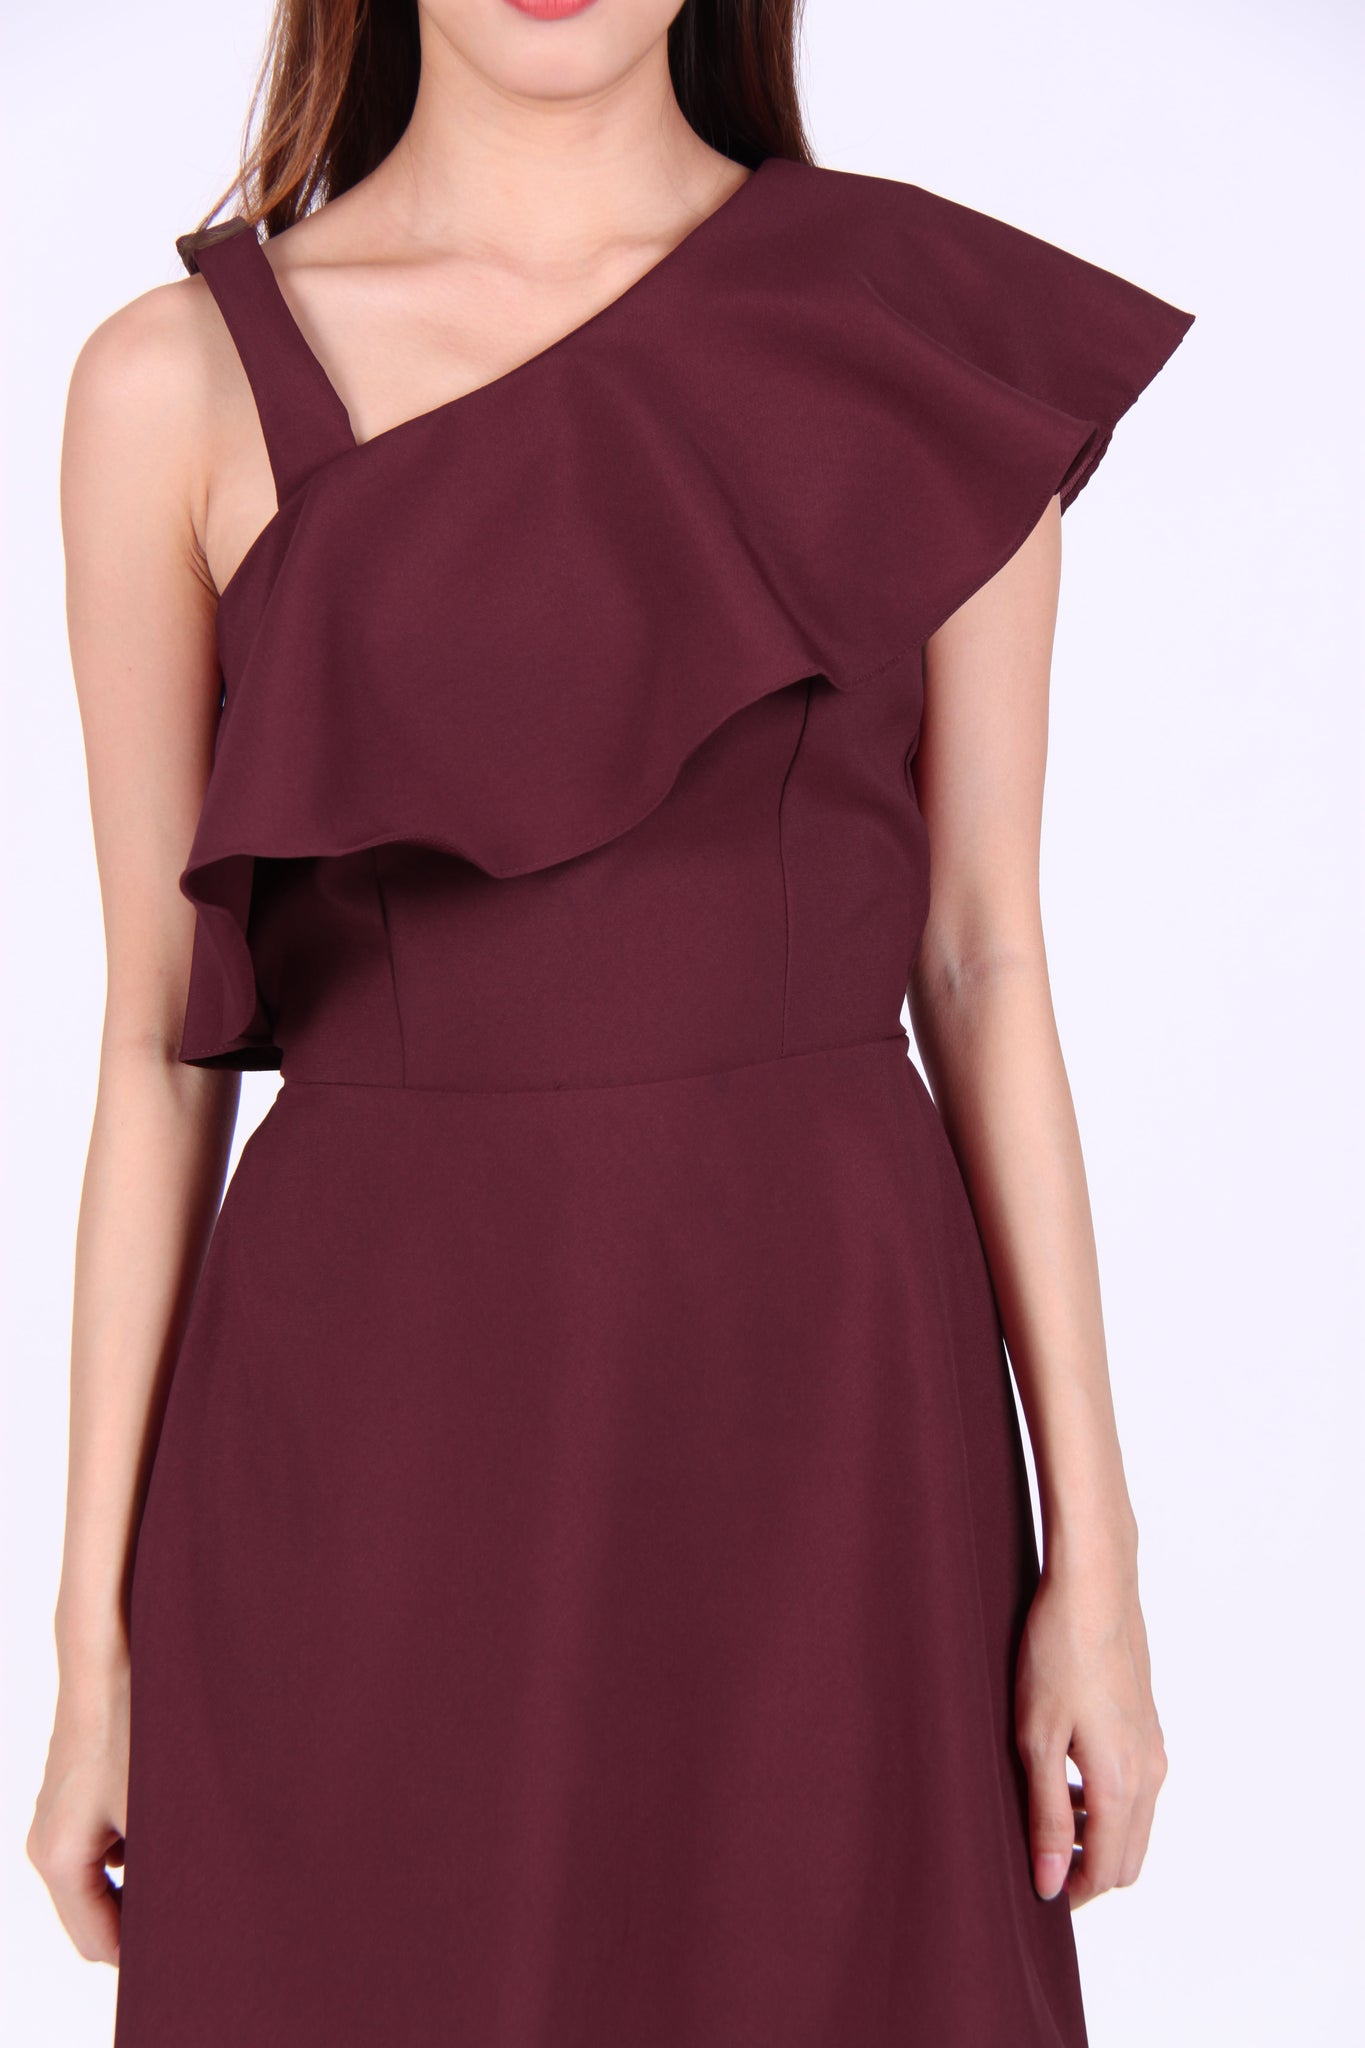 Strap Toga Ruffles Dress in Maroon